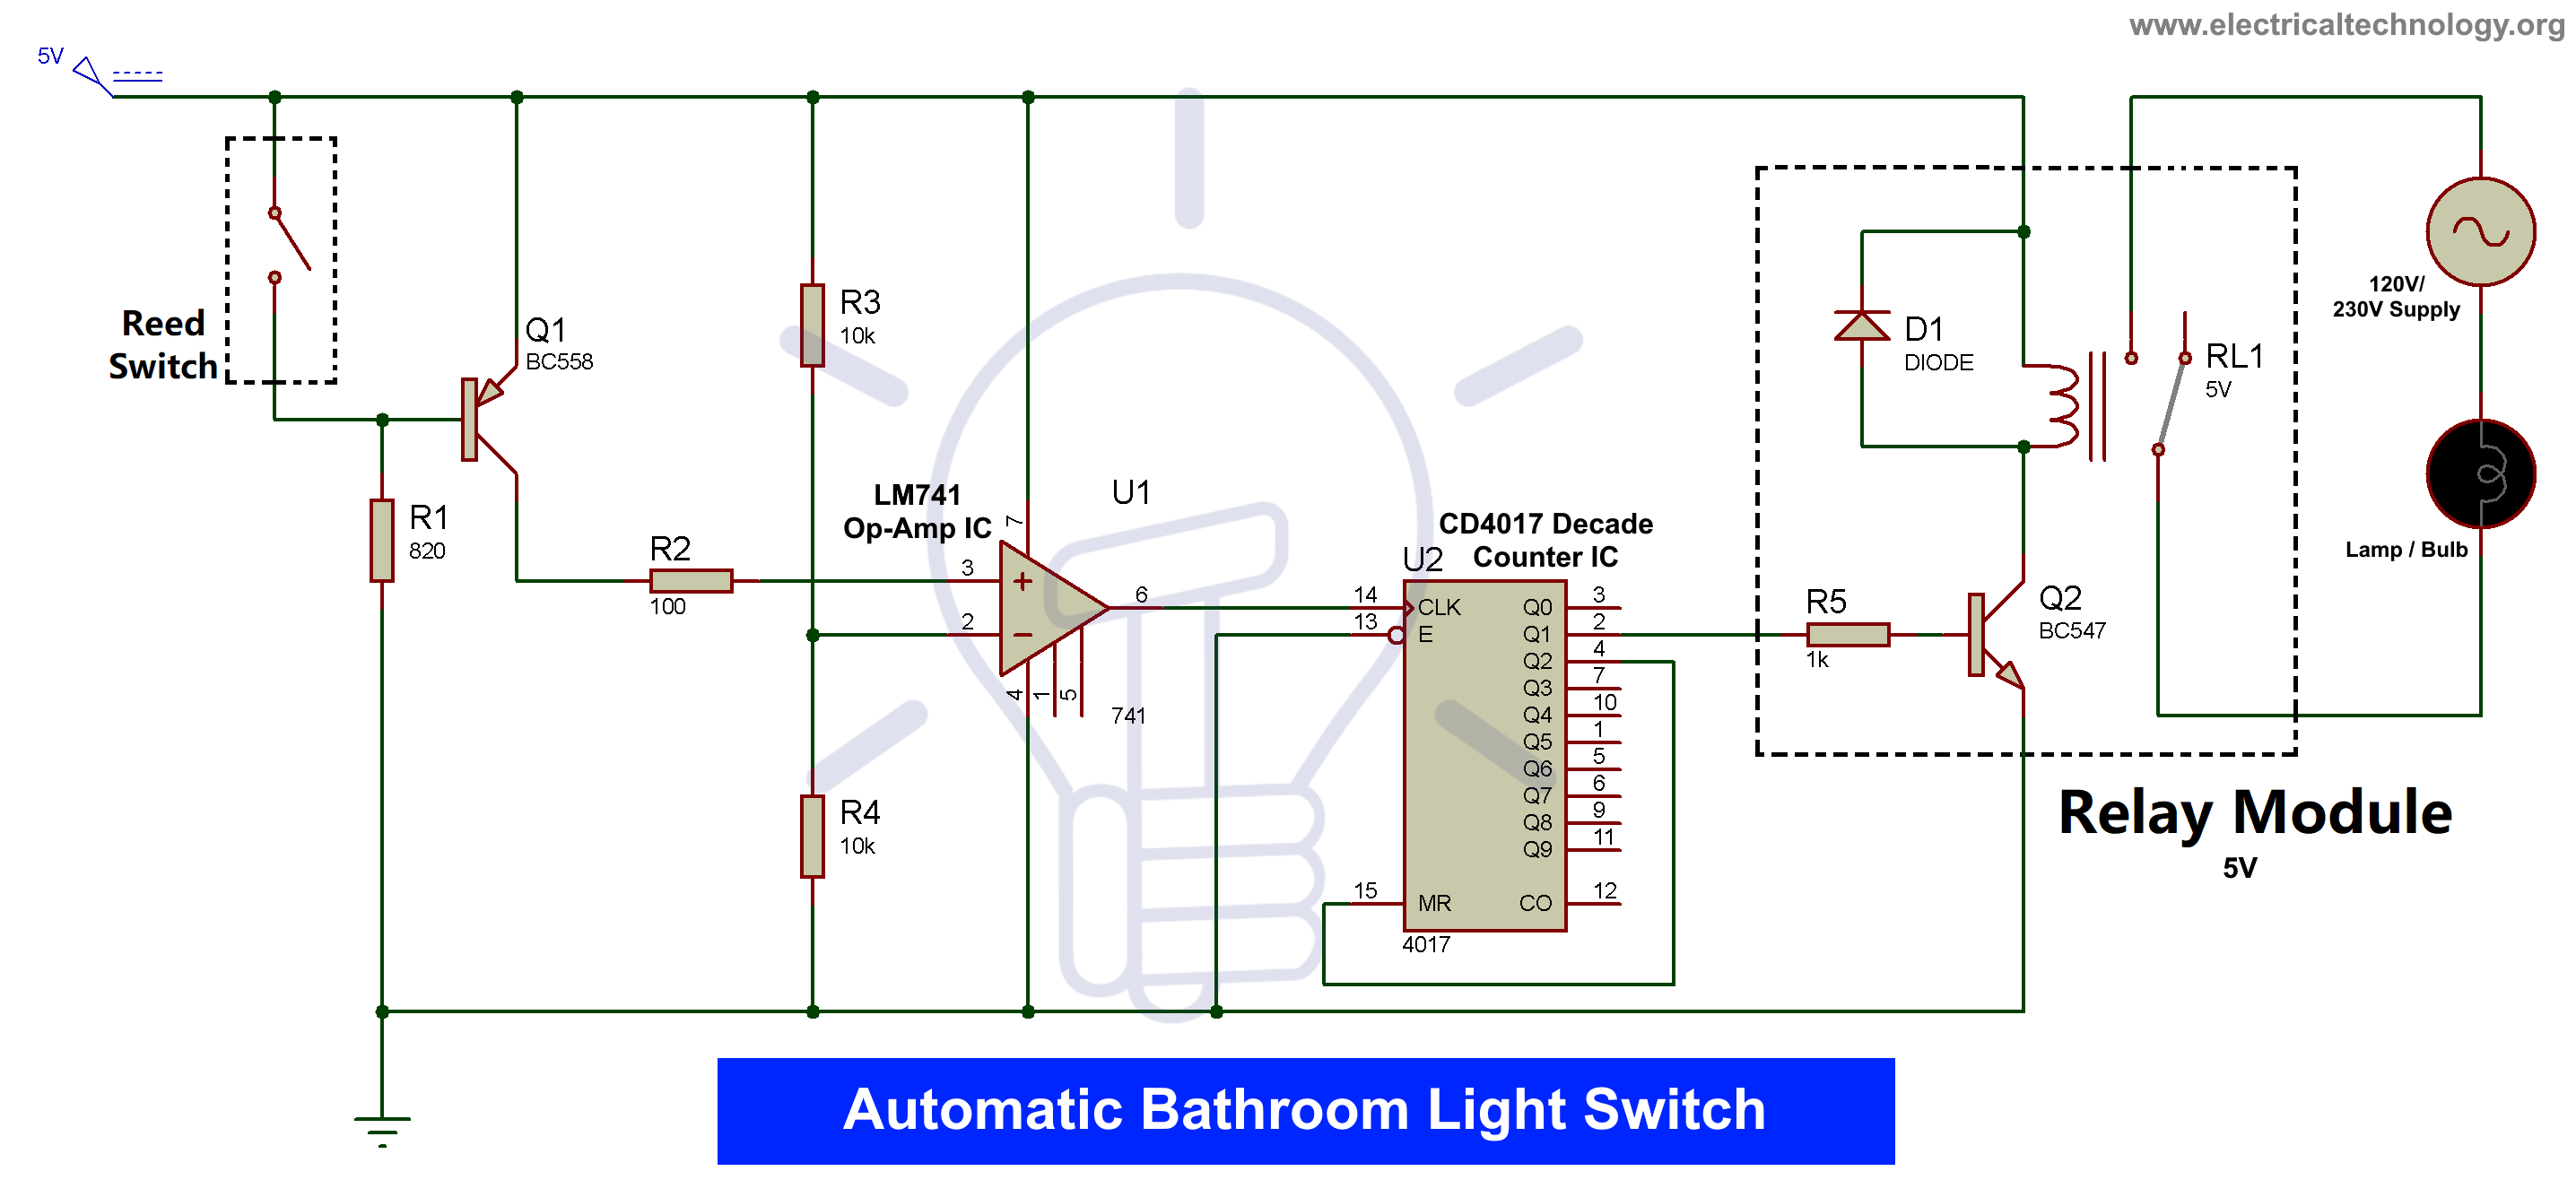 Automatic Bathroom Light Switch Circuit Diagram and ...